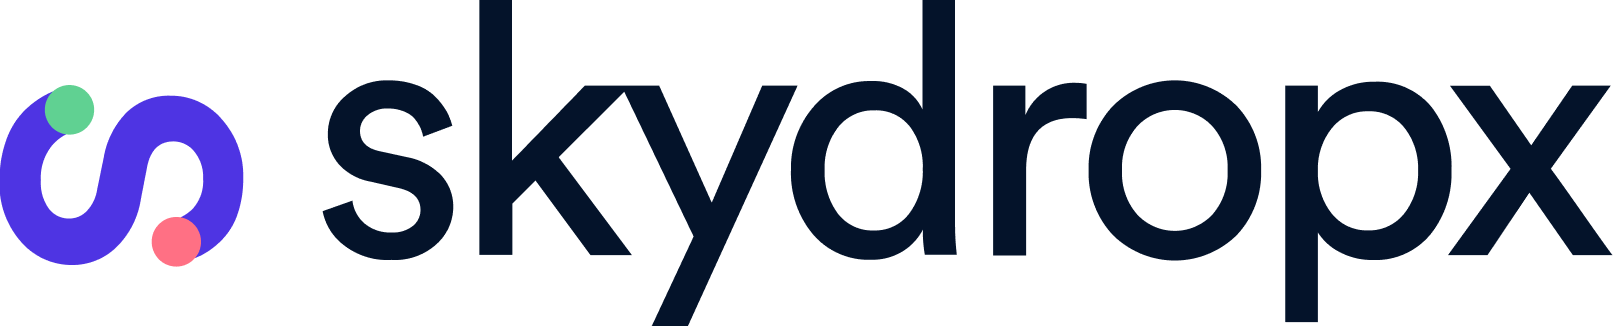 Logo_Skydropx_-_On_White.png